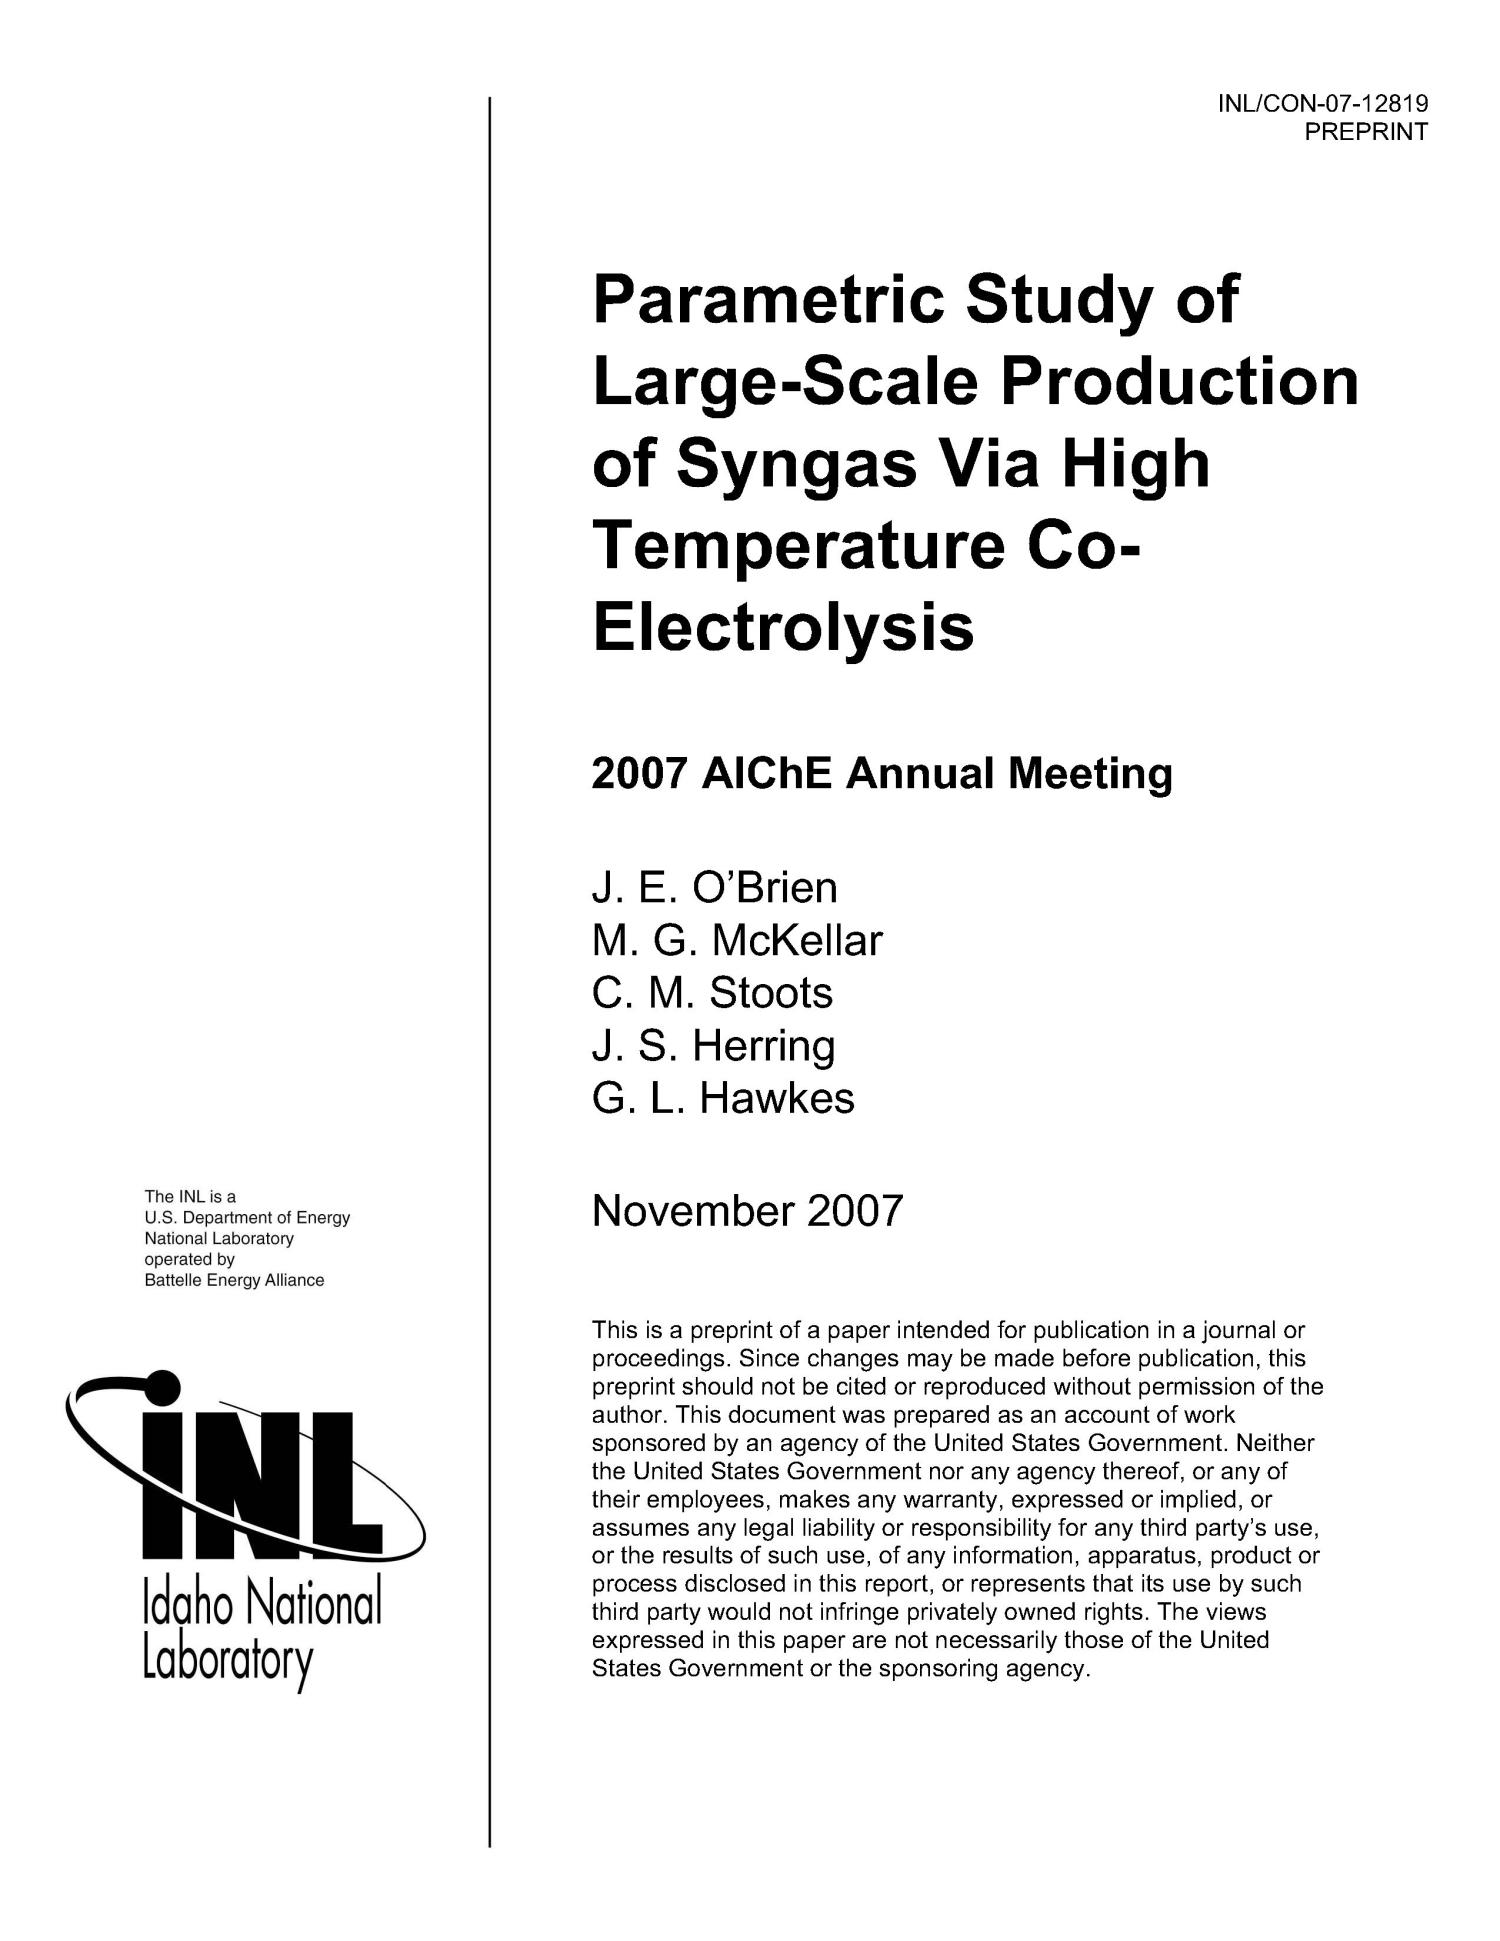 Parametric Study Of Large-Scale Production Of Syngas Via High Temperature Co-Electrolysis                                                                                                      [Sequence #]: 1 of 15